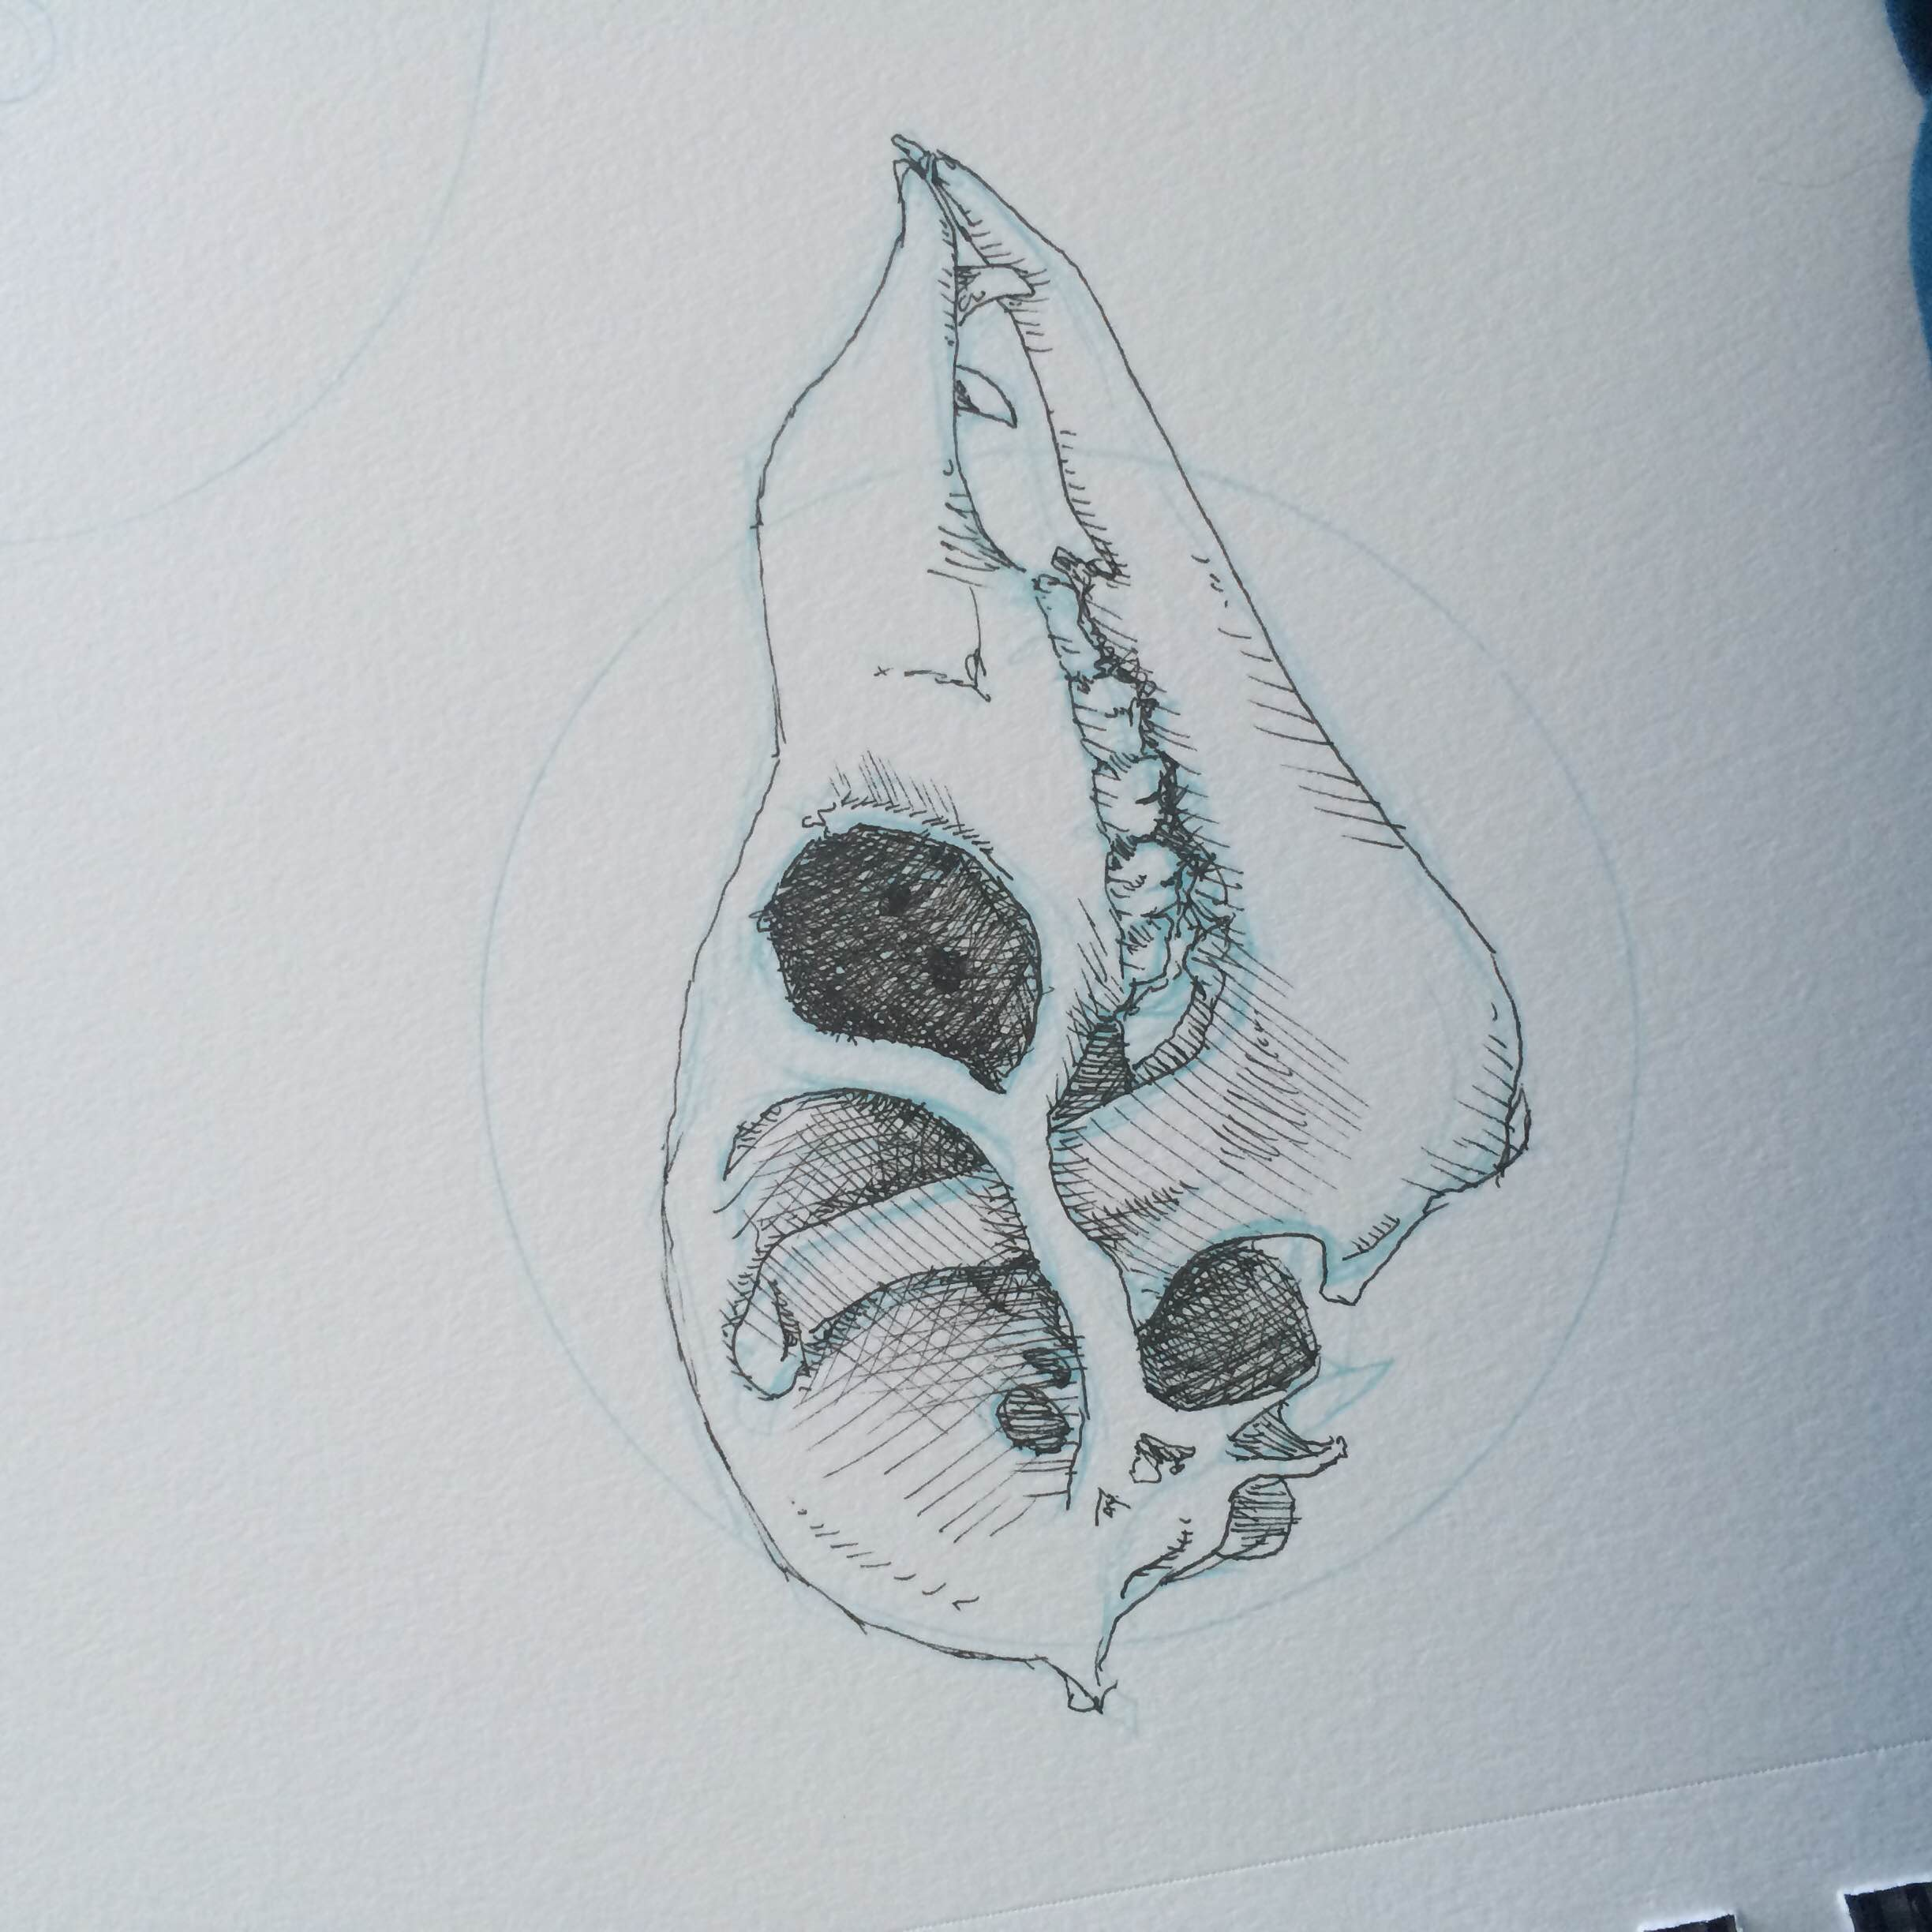 This is an alpaca skull I drew for a project I had–I was hoping to better understand what an alpaca's skull looks like under all that fluff they have.